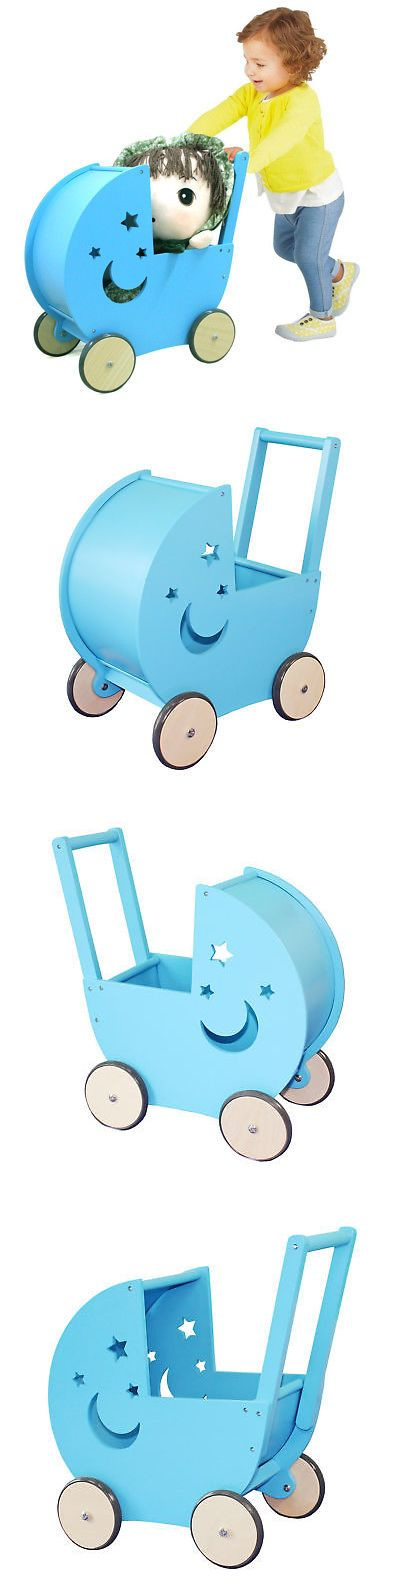 Other Toys for Baby 179013: Wooden Walker Doll Pram Buggy Pushchair Children Pretend Play Pram Toy -> BUY IT NOW ONLY: $56.98 on eBay!